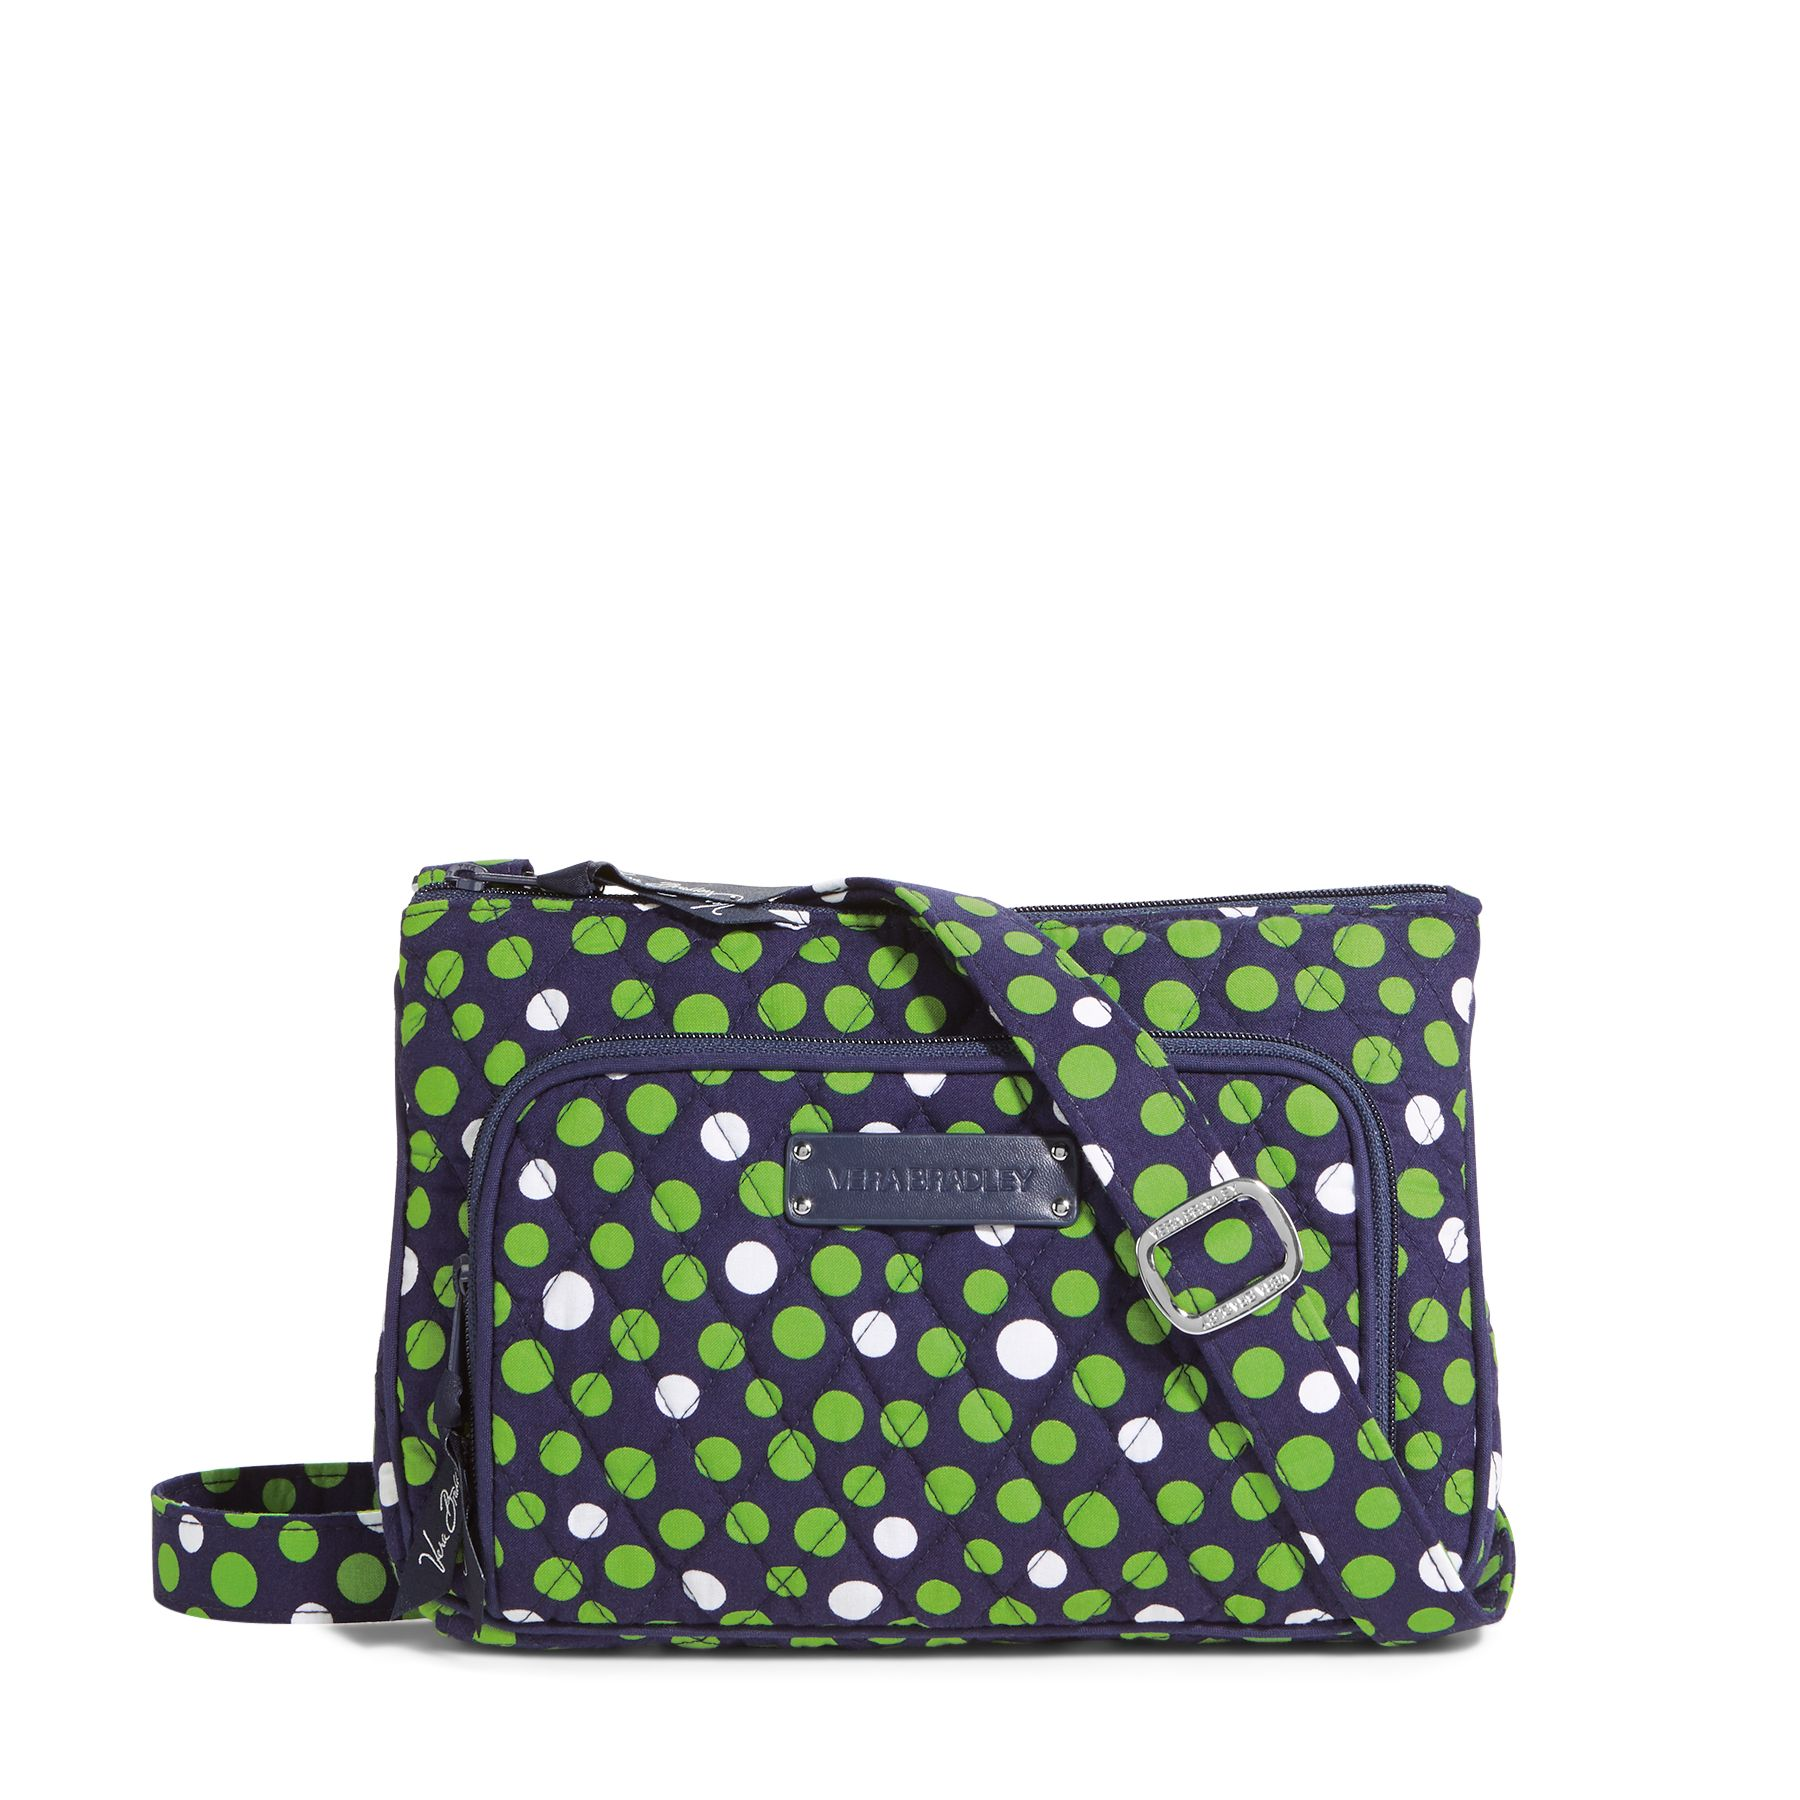 Vera Bradley Little Hipster Crossbody in Lucky Dots